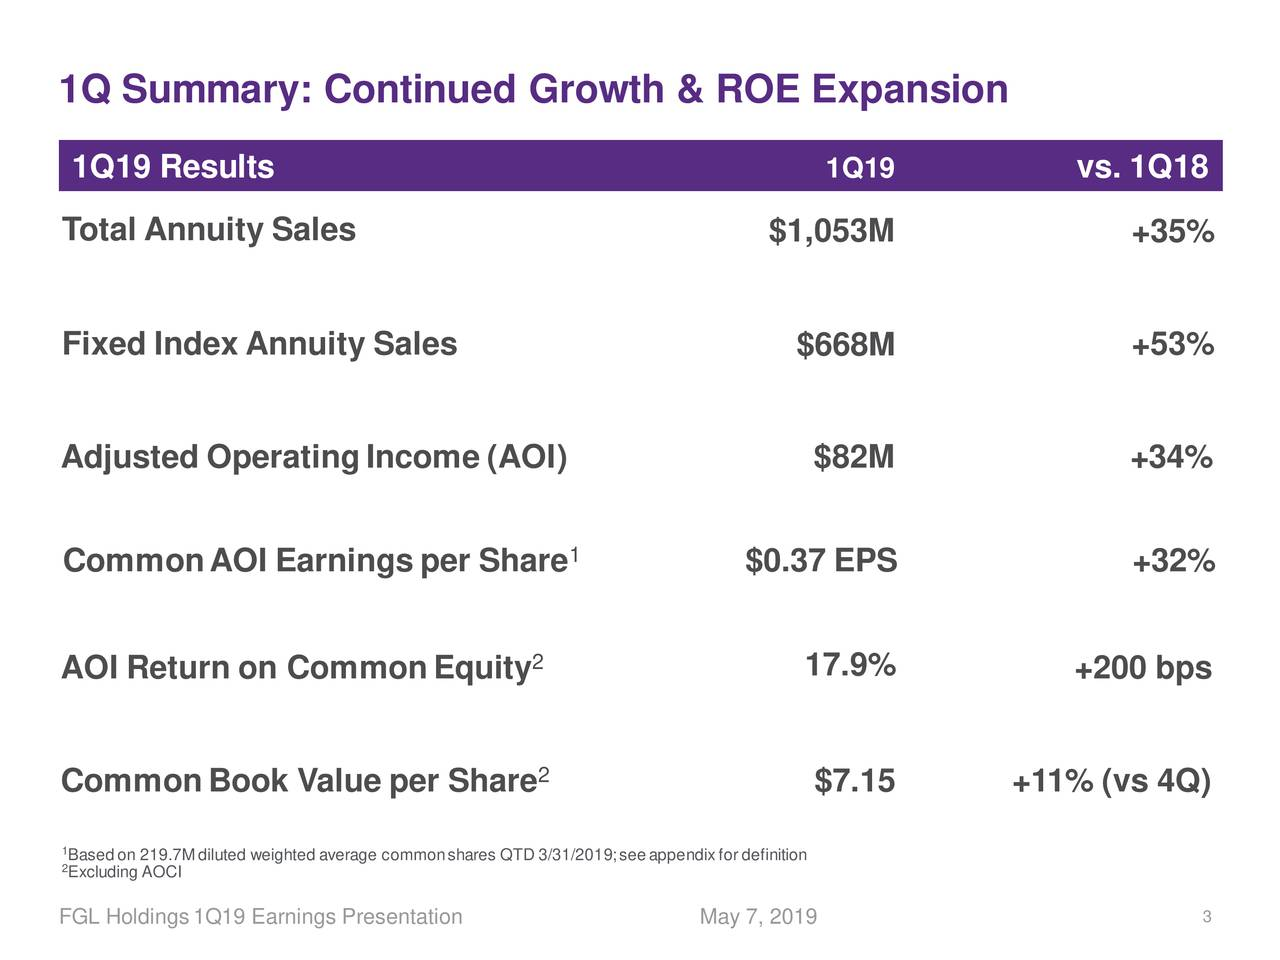 1Q19 Results 1Q19 vs. 1Q18 Total Annuity Sales $1,053M +35% Fixed Index Annuity Sales $668M +53% Adjusted OperatingIncome (AOI) $82M +34% CommonAOI Earnings per Share 1 $0.37 EPS +32% AOI Return on CommonEquity 2 17.9% +200 bps CommonBook Value per Share 2 $7.15 +11% (vs 4Q) 1Basedon 219.7Mdiluted weighted average commonshares QTD 3/31/2019;seeappendixfor definition 2Excluding AOCI FGL Holdings1Q19 Earnings Presentation May 7, 2019 3